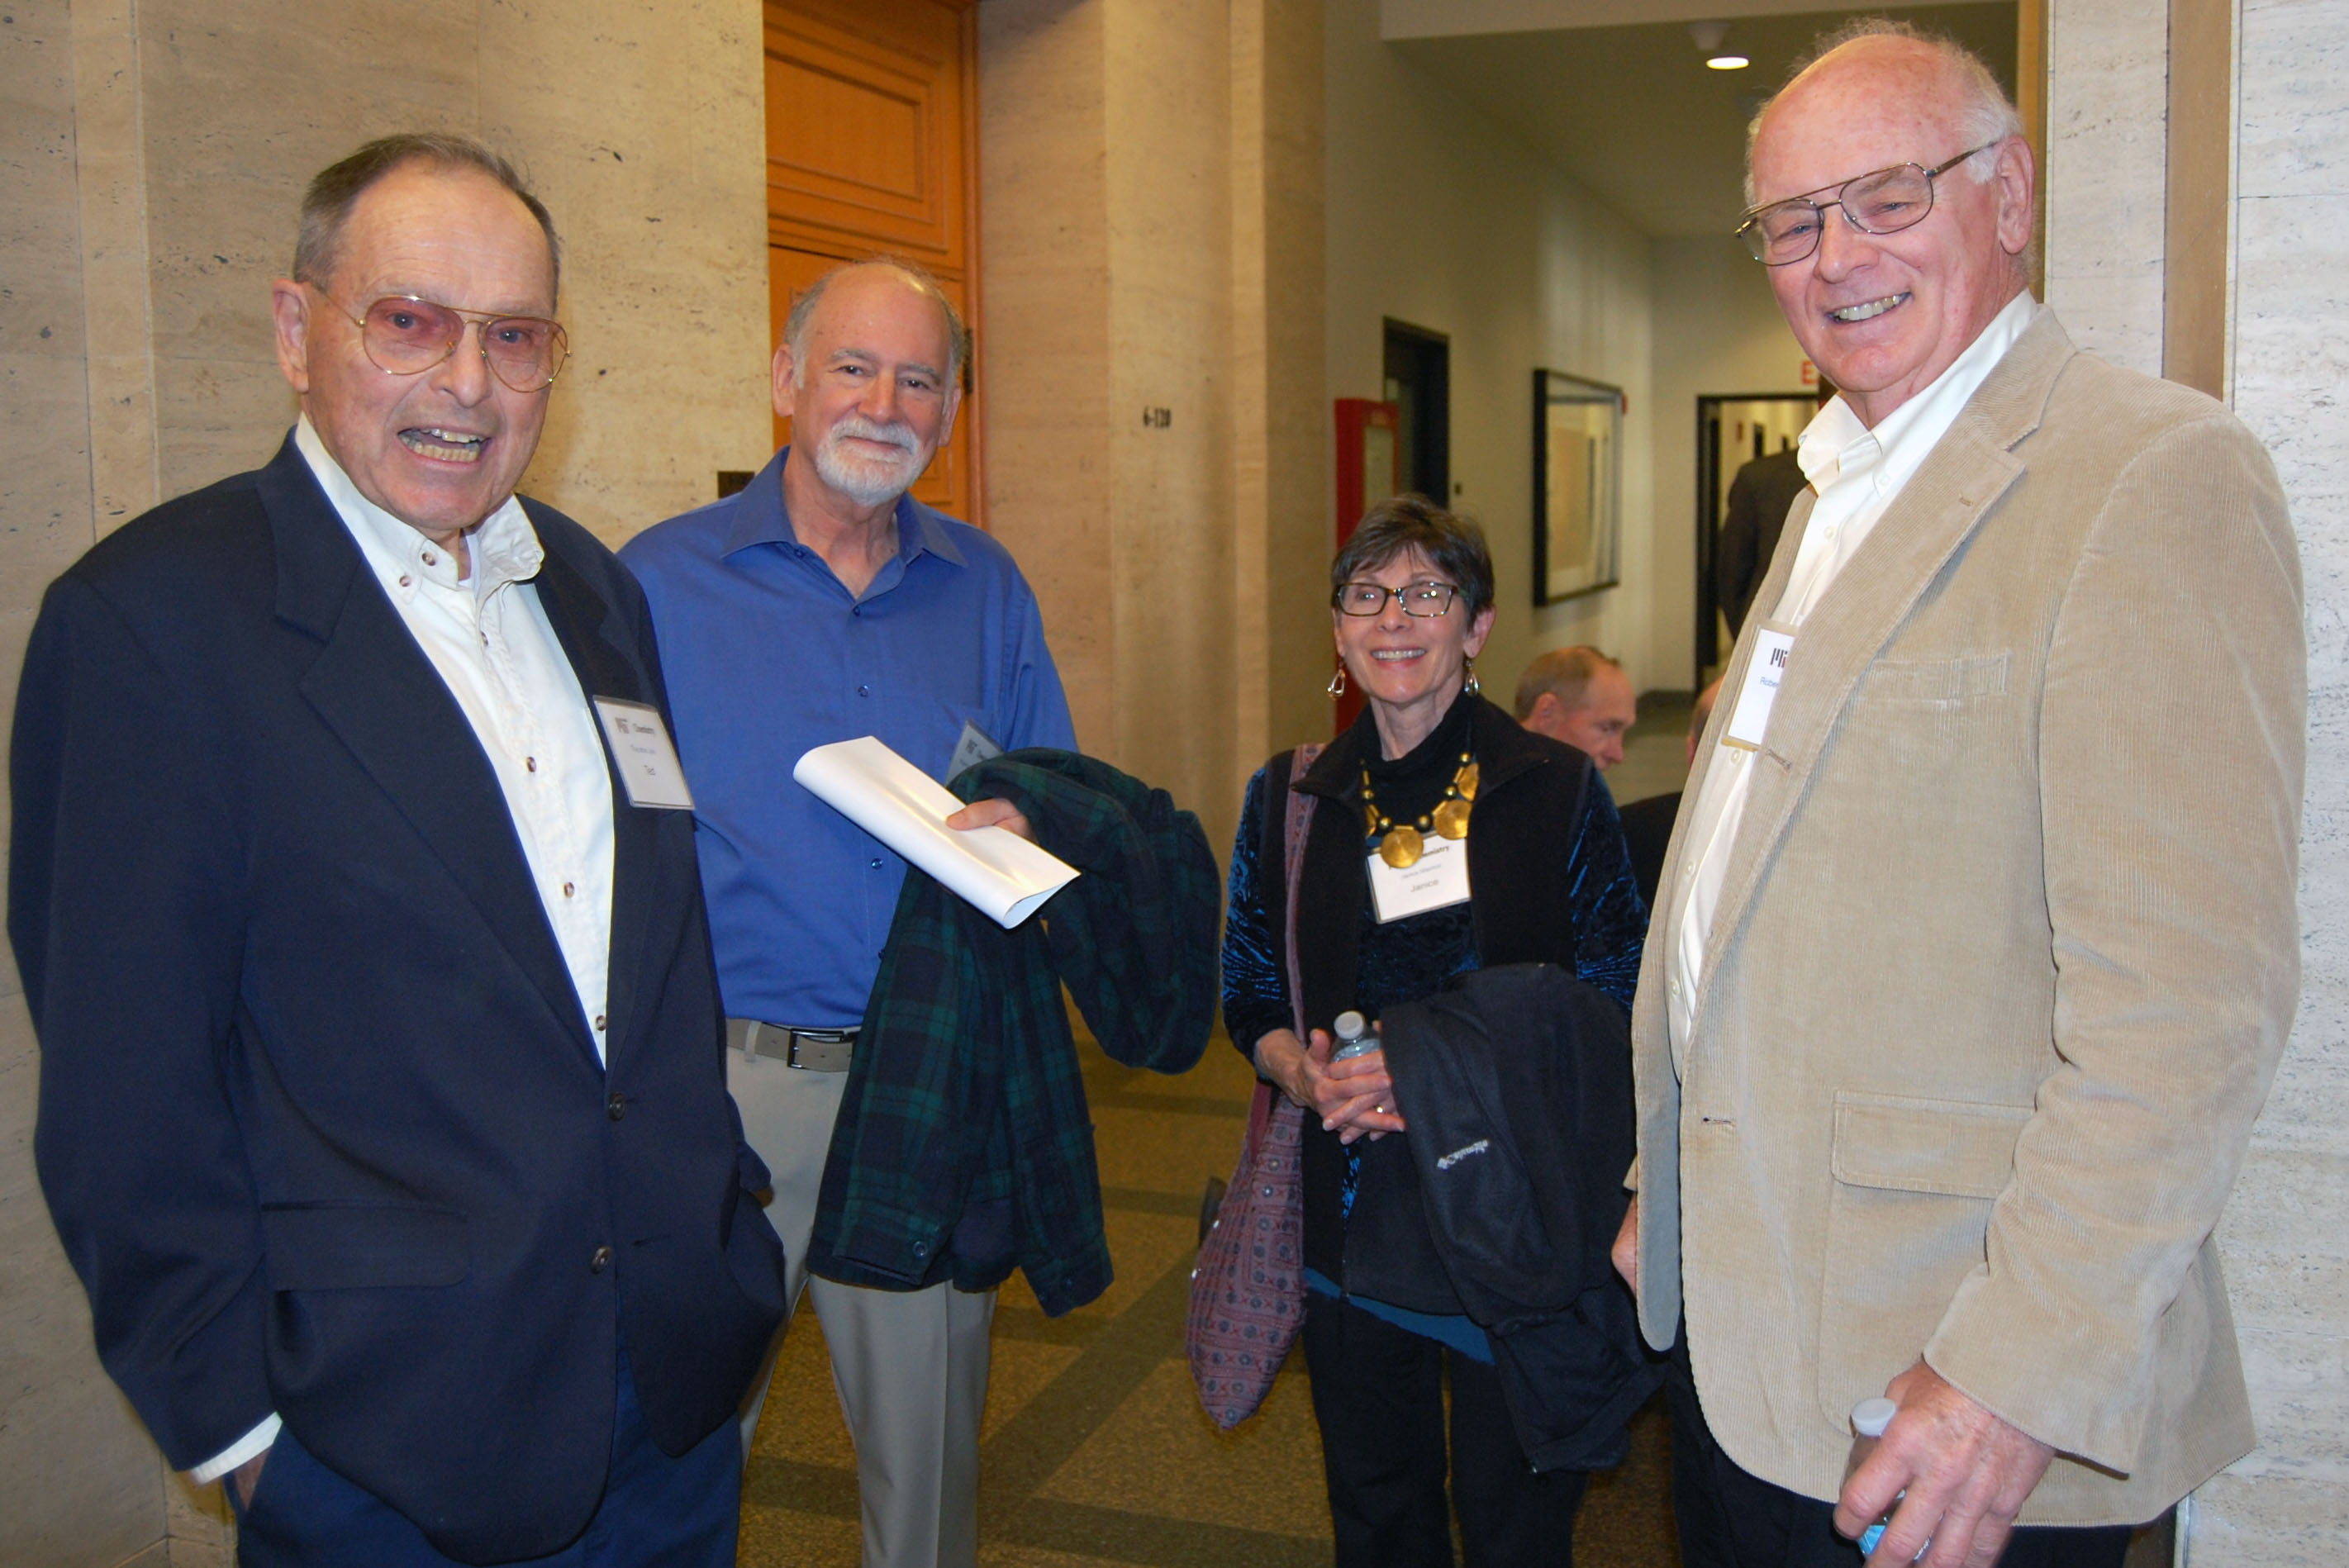 L-R: Theodore Jula, PhD '67 (Seyferth), Robert Marmor, PhD '70 (Seyferth), Janice Marmor, Robert Lambert, PhD '73 (Seyferth) pose outside Room 6-120